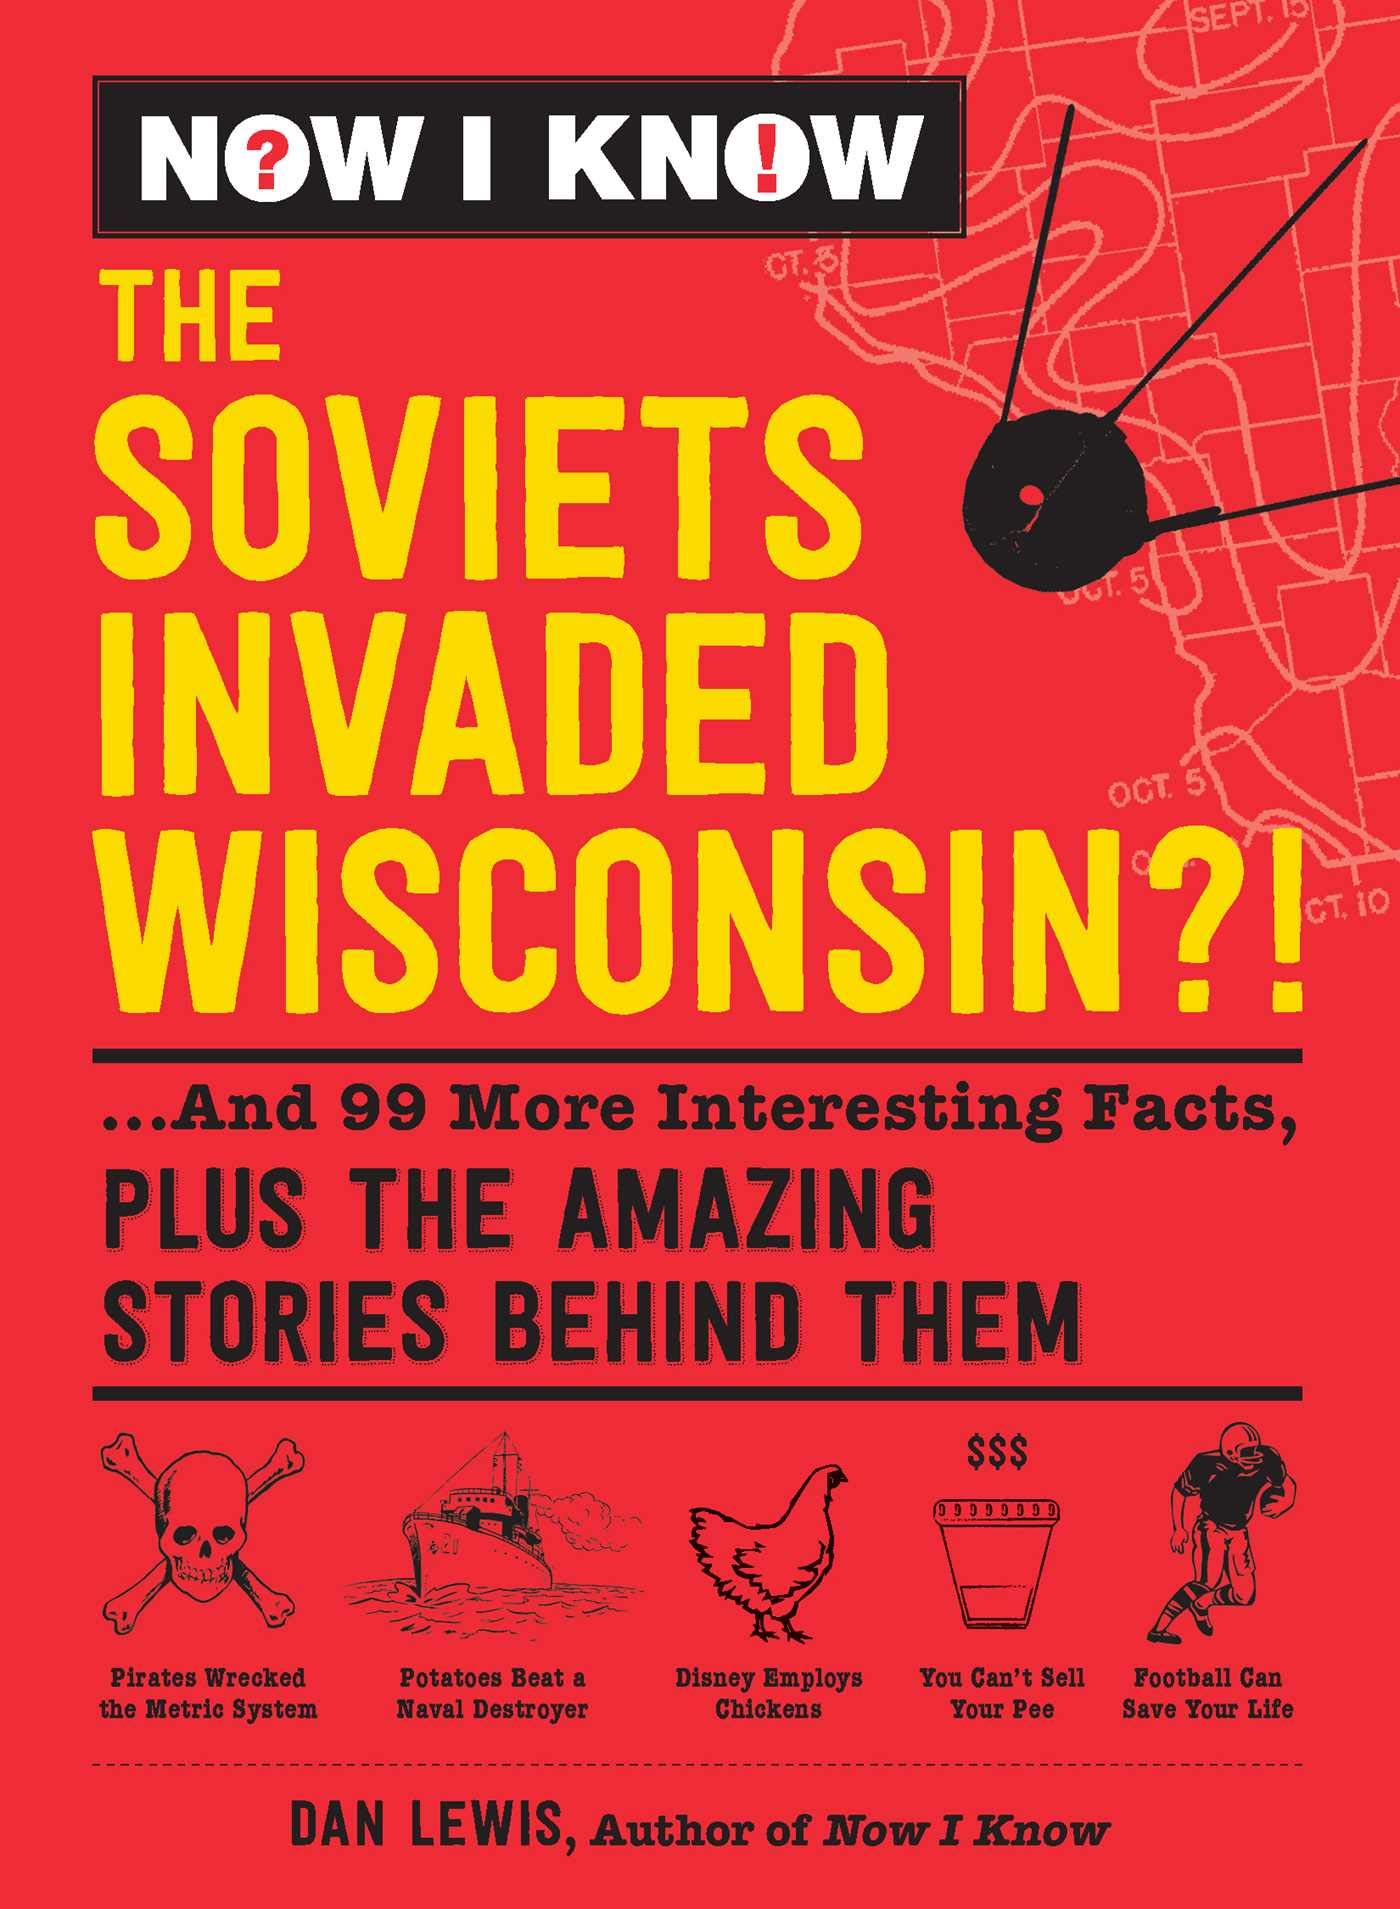 Now I Know: The Soviets Invaded Wisconsin?!: ...And 99 More Interesting Facts, Plus the Amazing Stories Behind Them by Adams Media